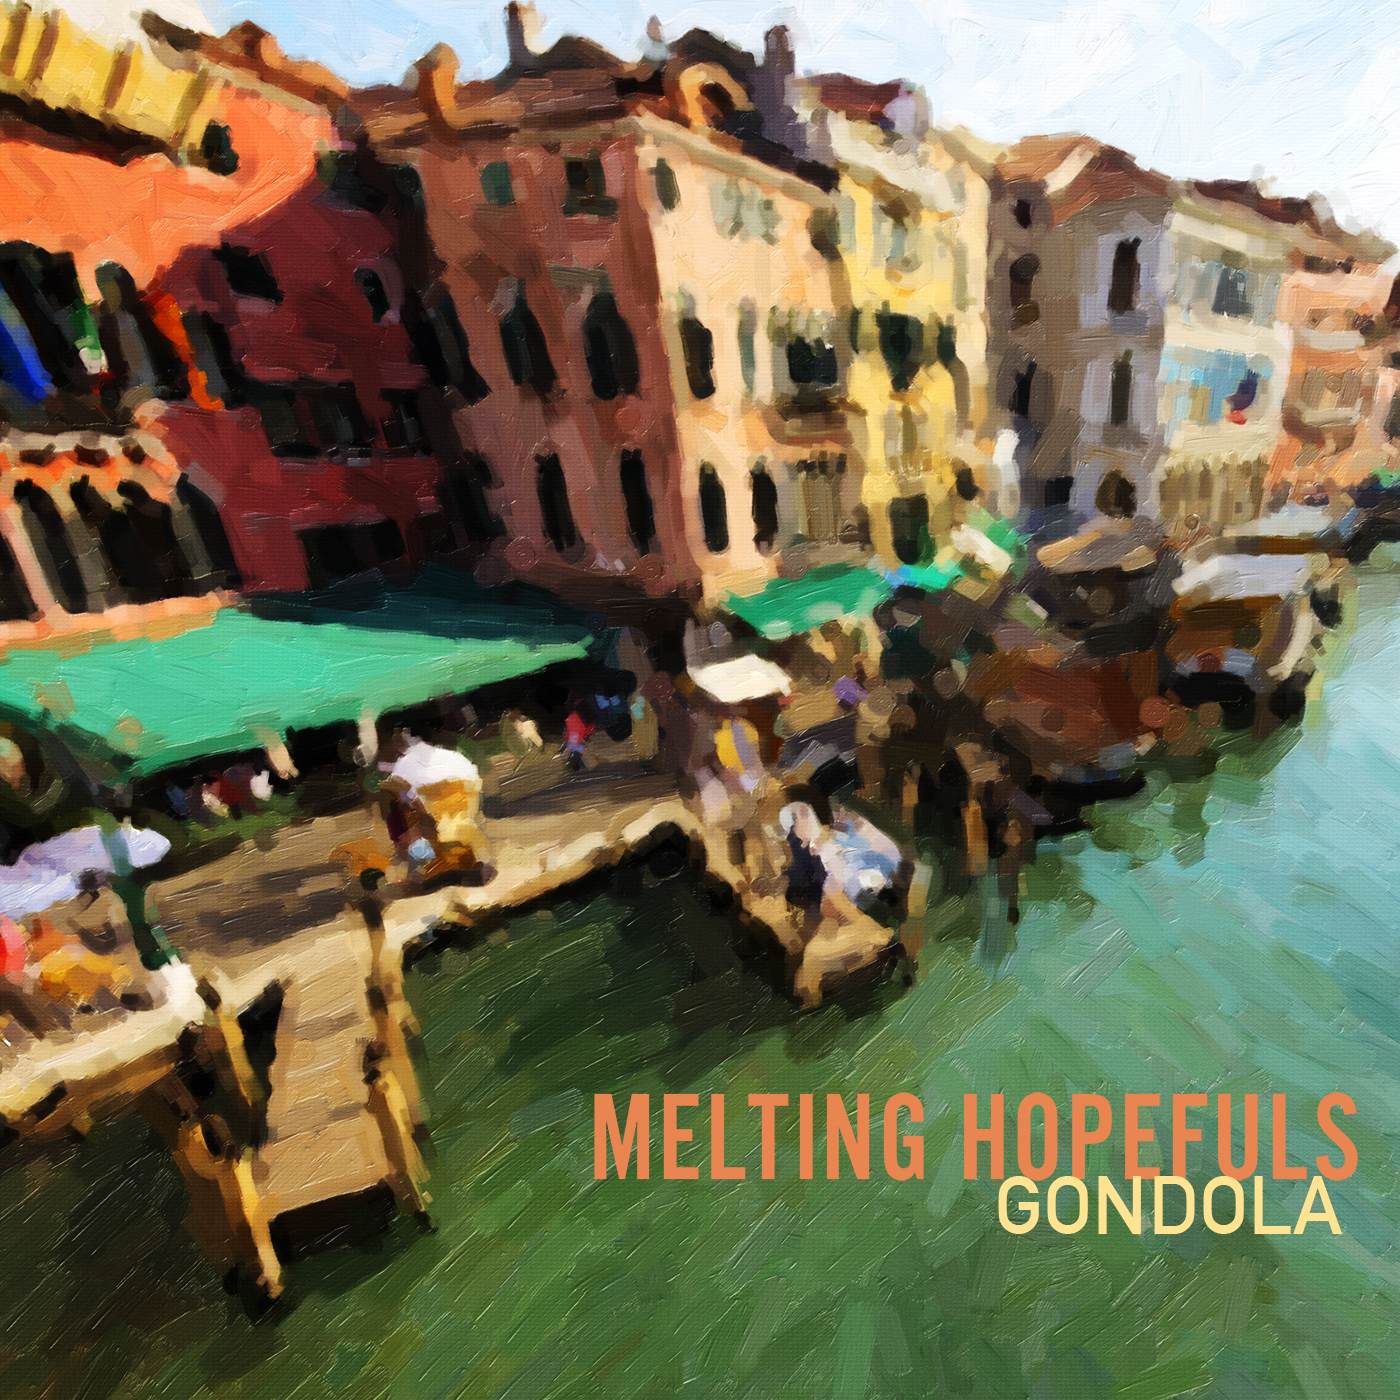 Gondola - Melting Hopefuls